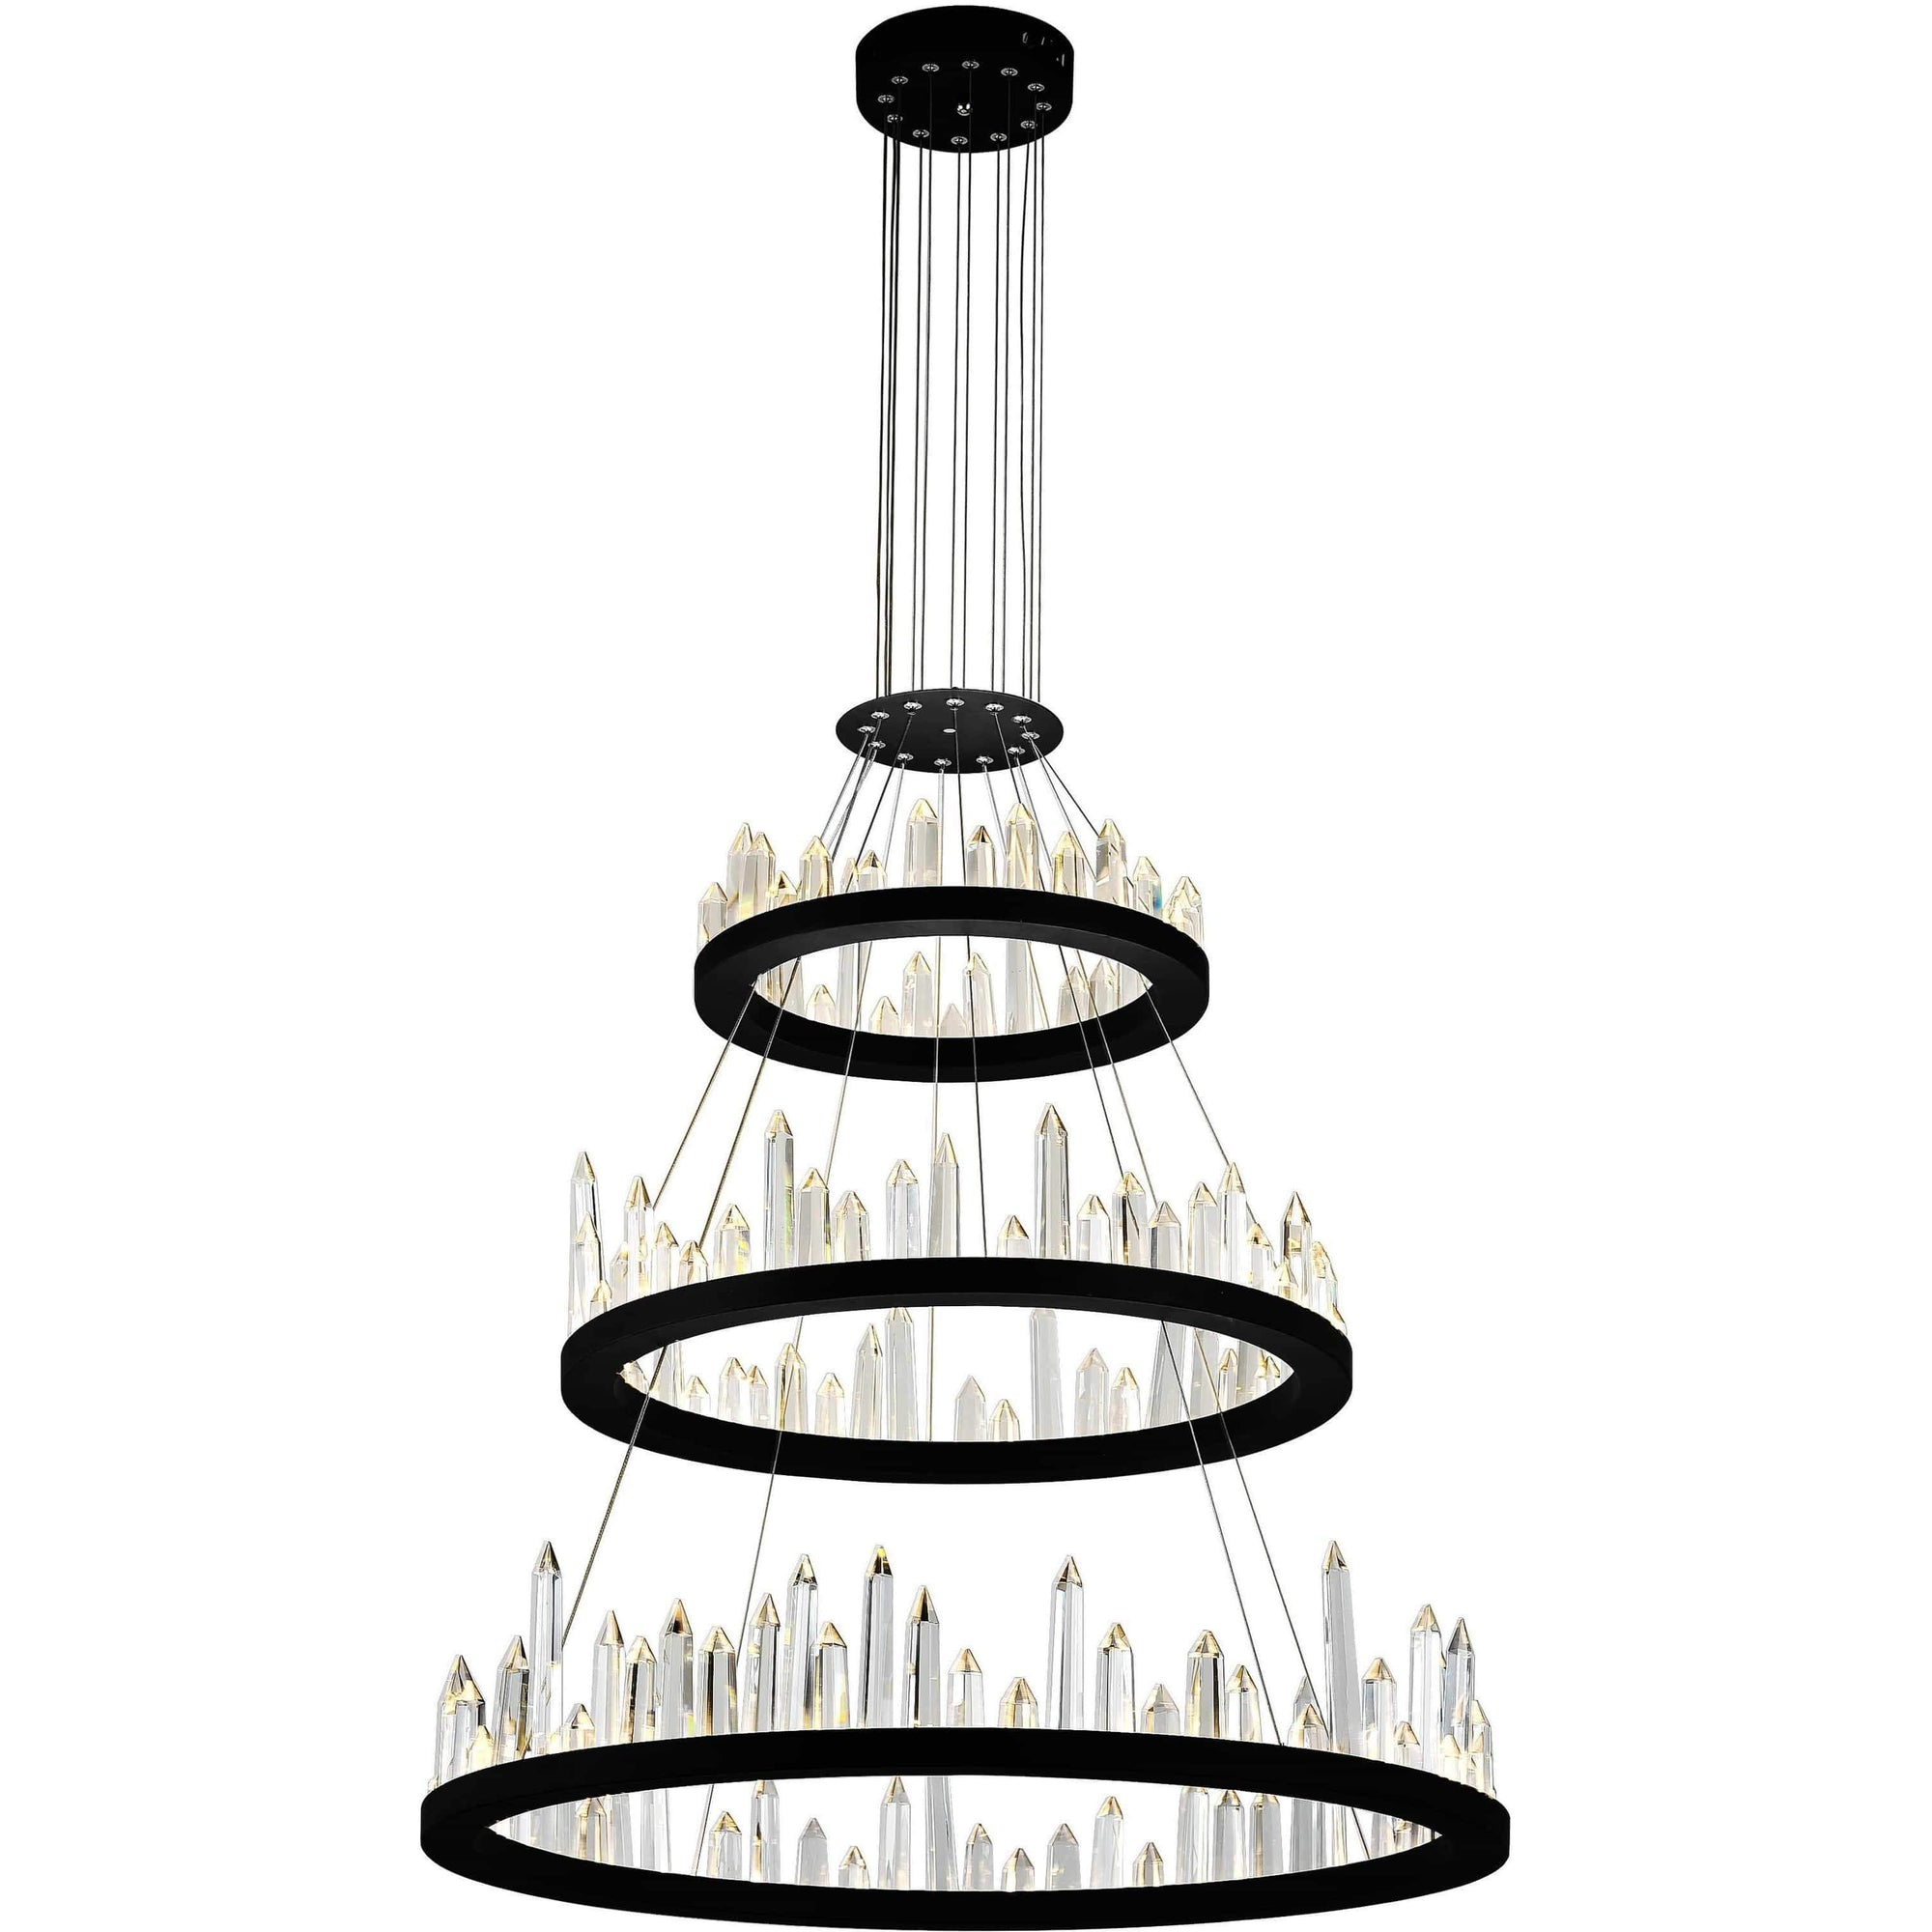 CWI Lighting Chandeliers Black / K9 Clear Juliette LED Chandelier with Black Finish by CWI Lighting 1043P32-3-101